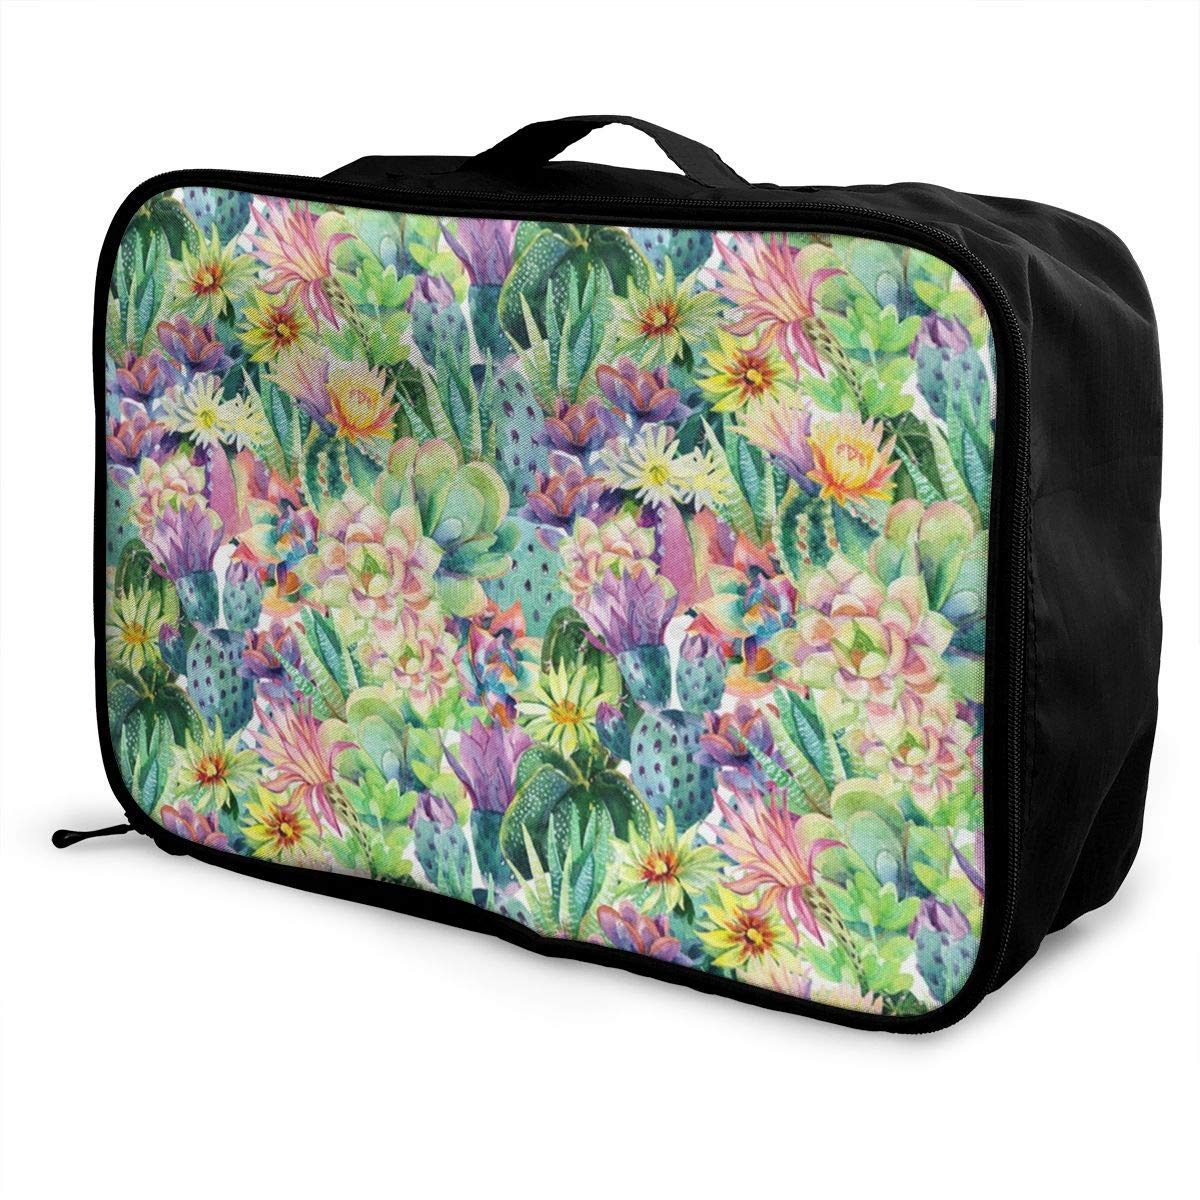 JTRVW Luggage Bags for Travel Cactus Flowers Succulents Travel Duffel Bag Waterproof Fashion Lightweight Large Capacity Portable Duffel Bag for Men /& Women